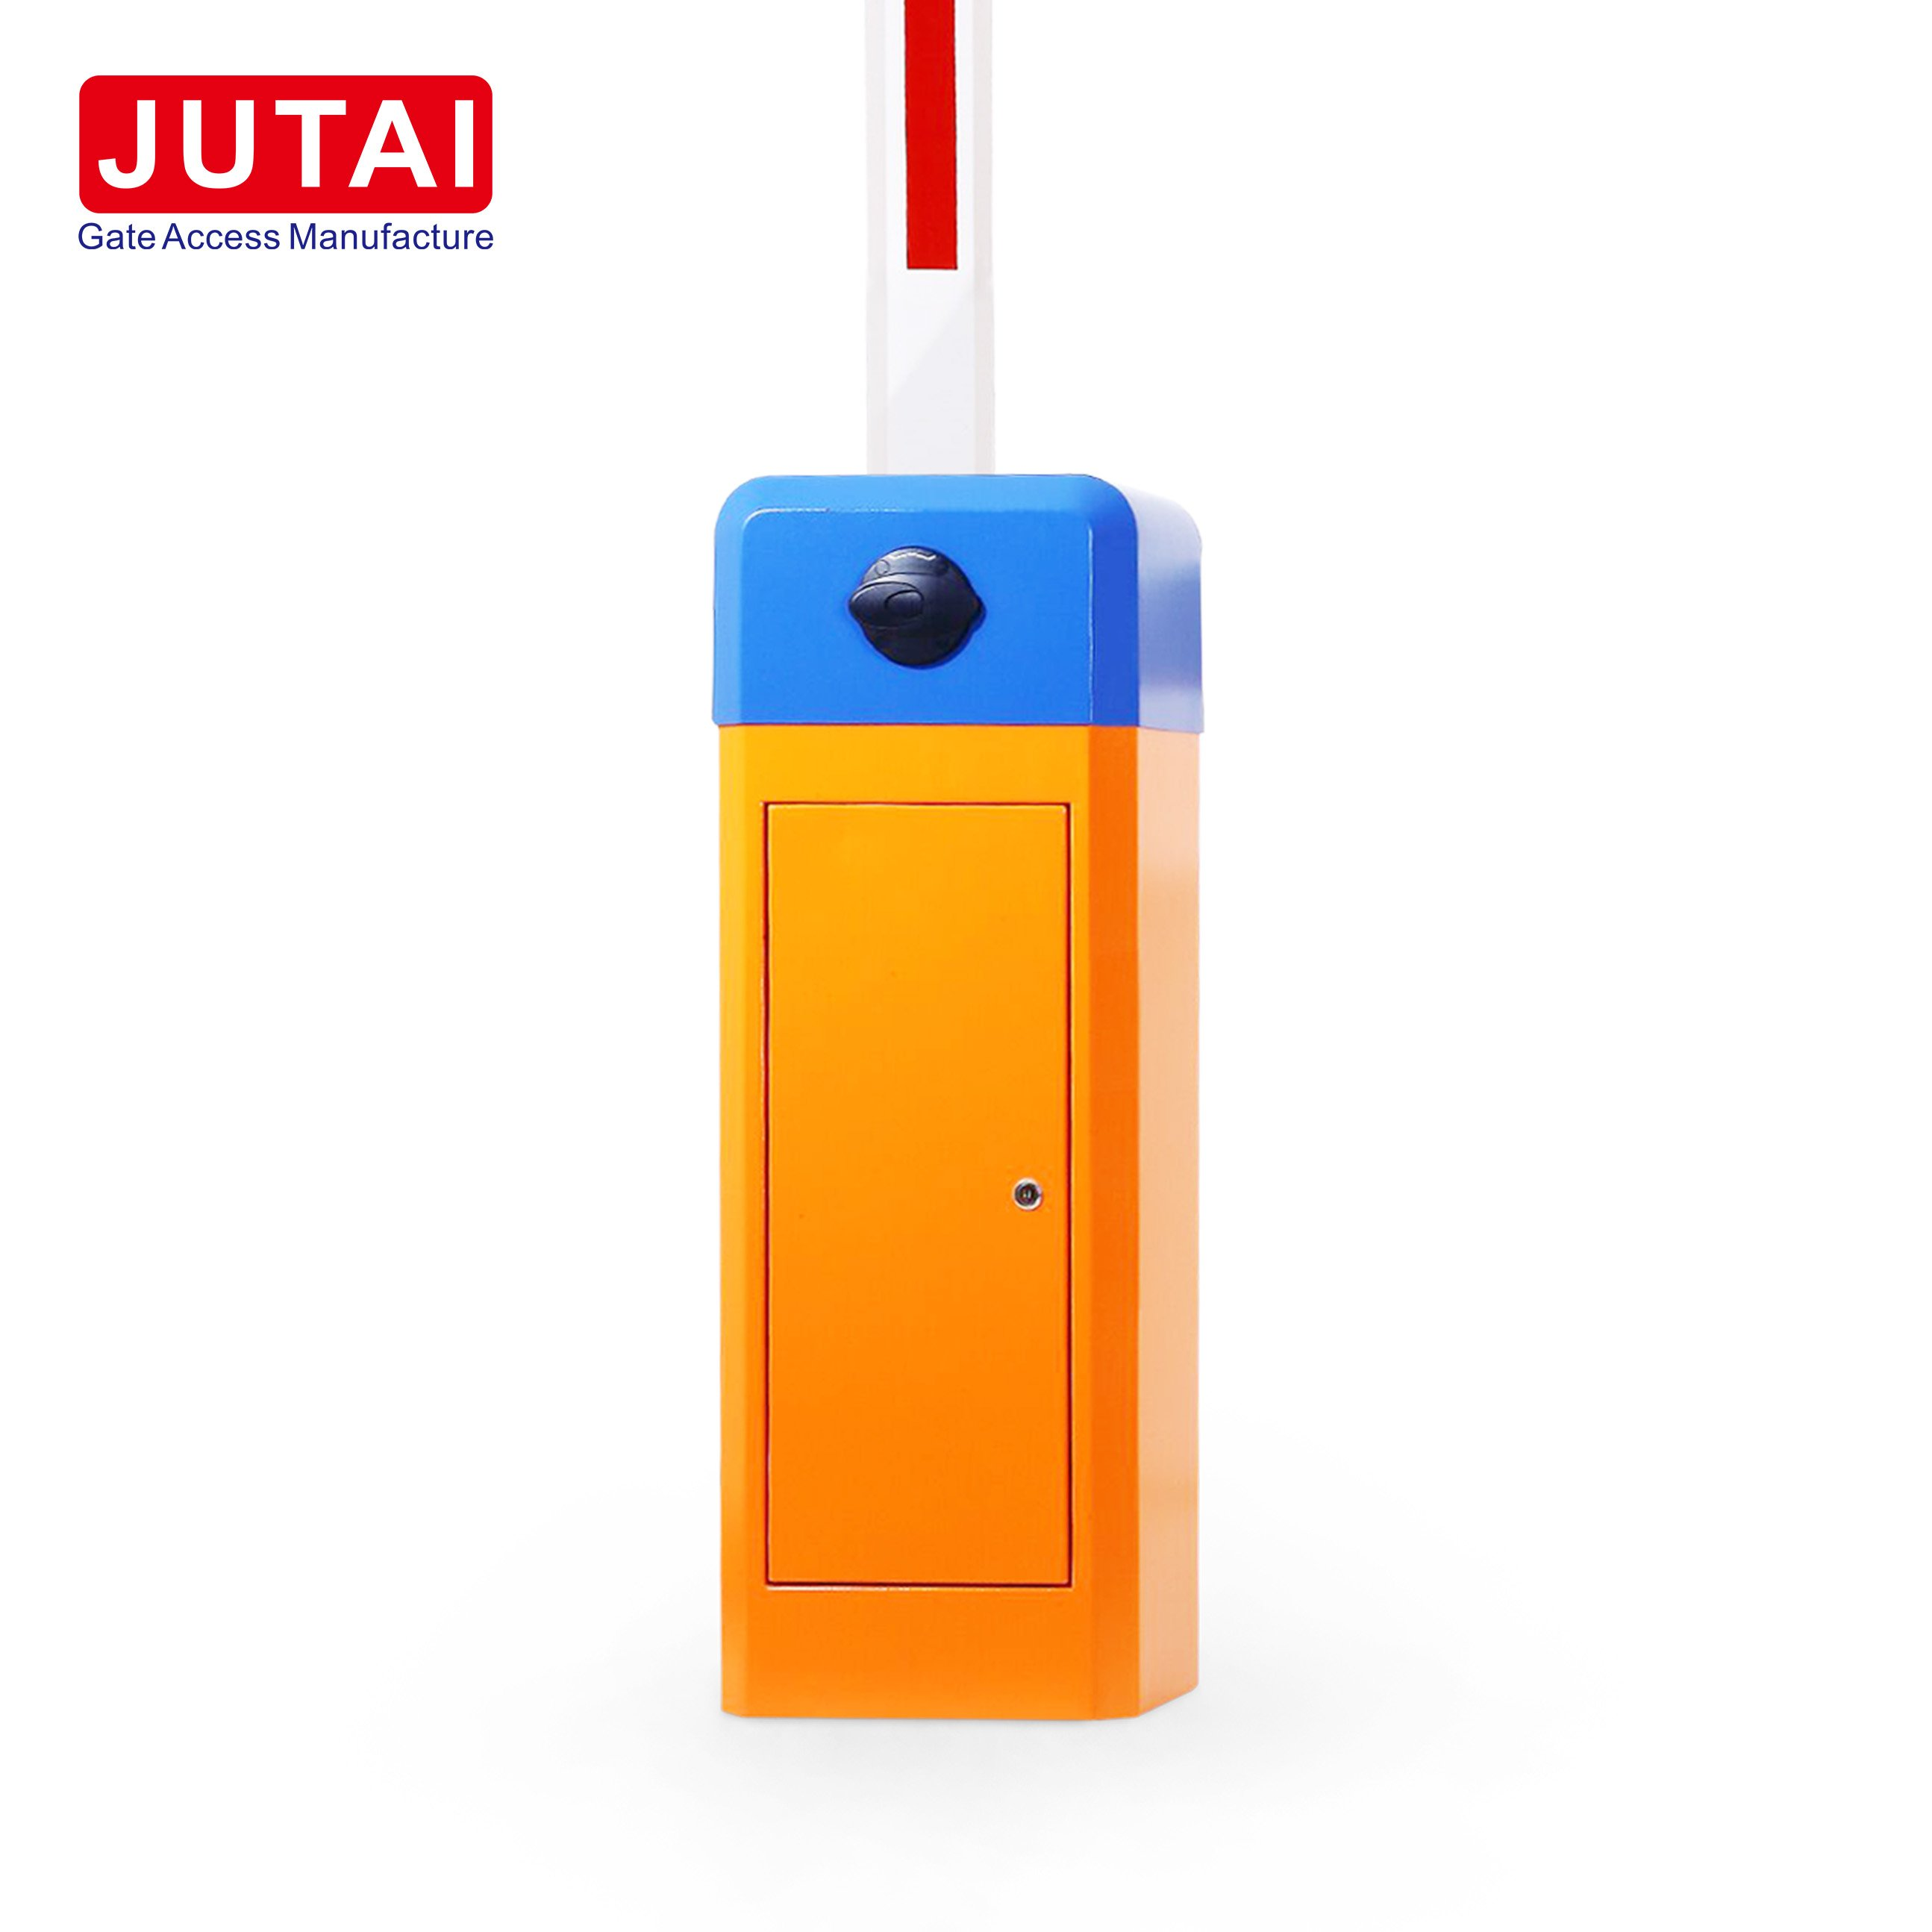 JUTAI Intelligent Barrier Gate